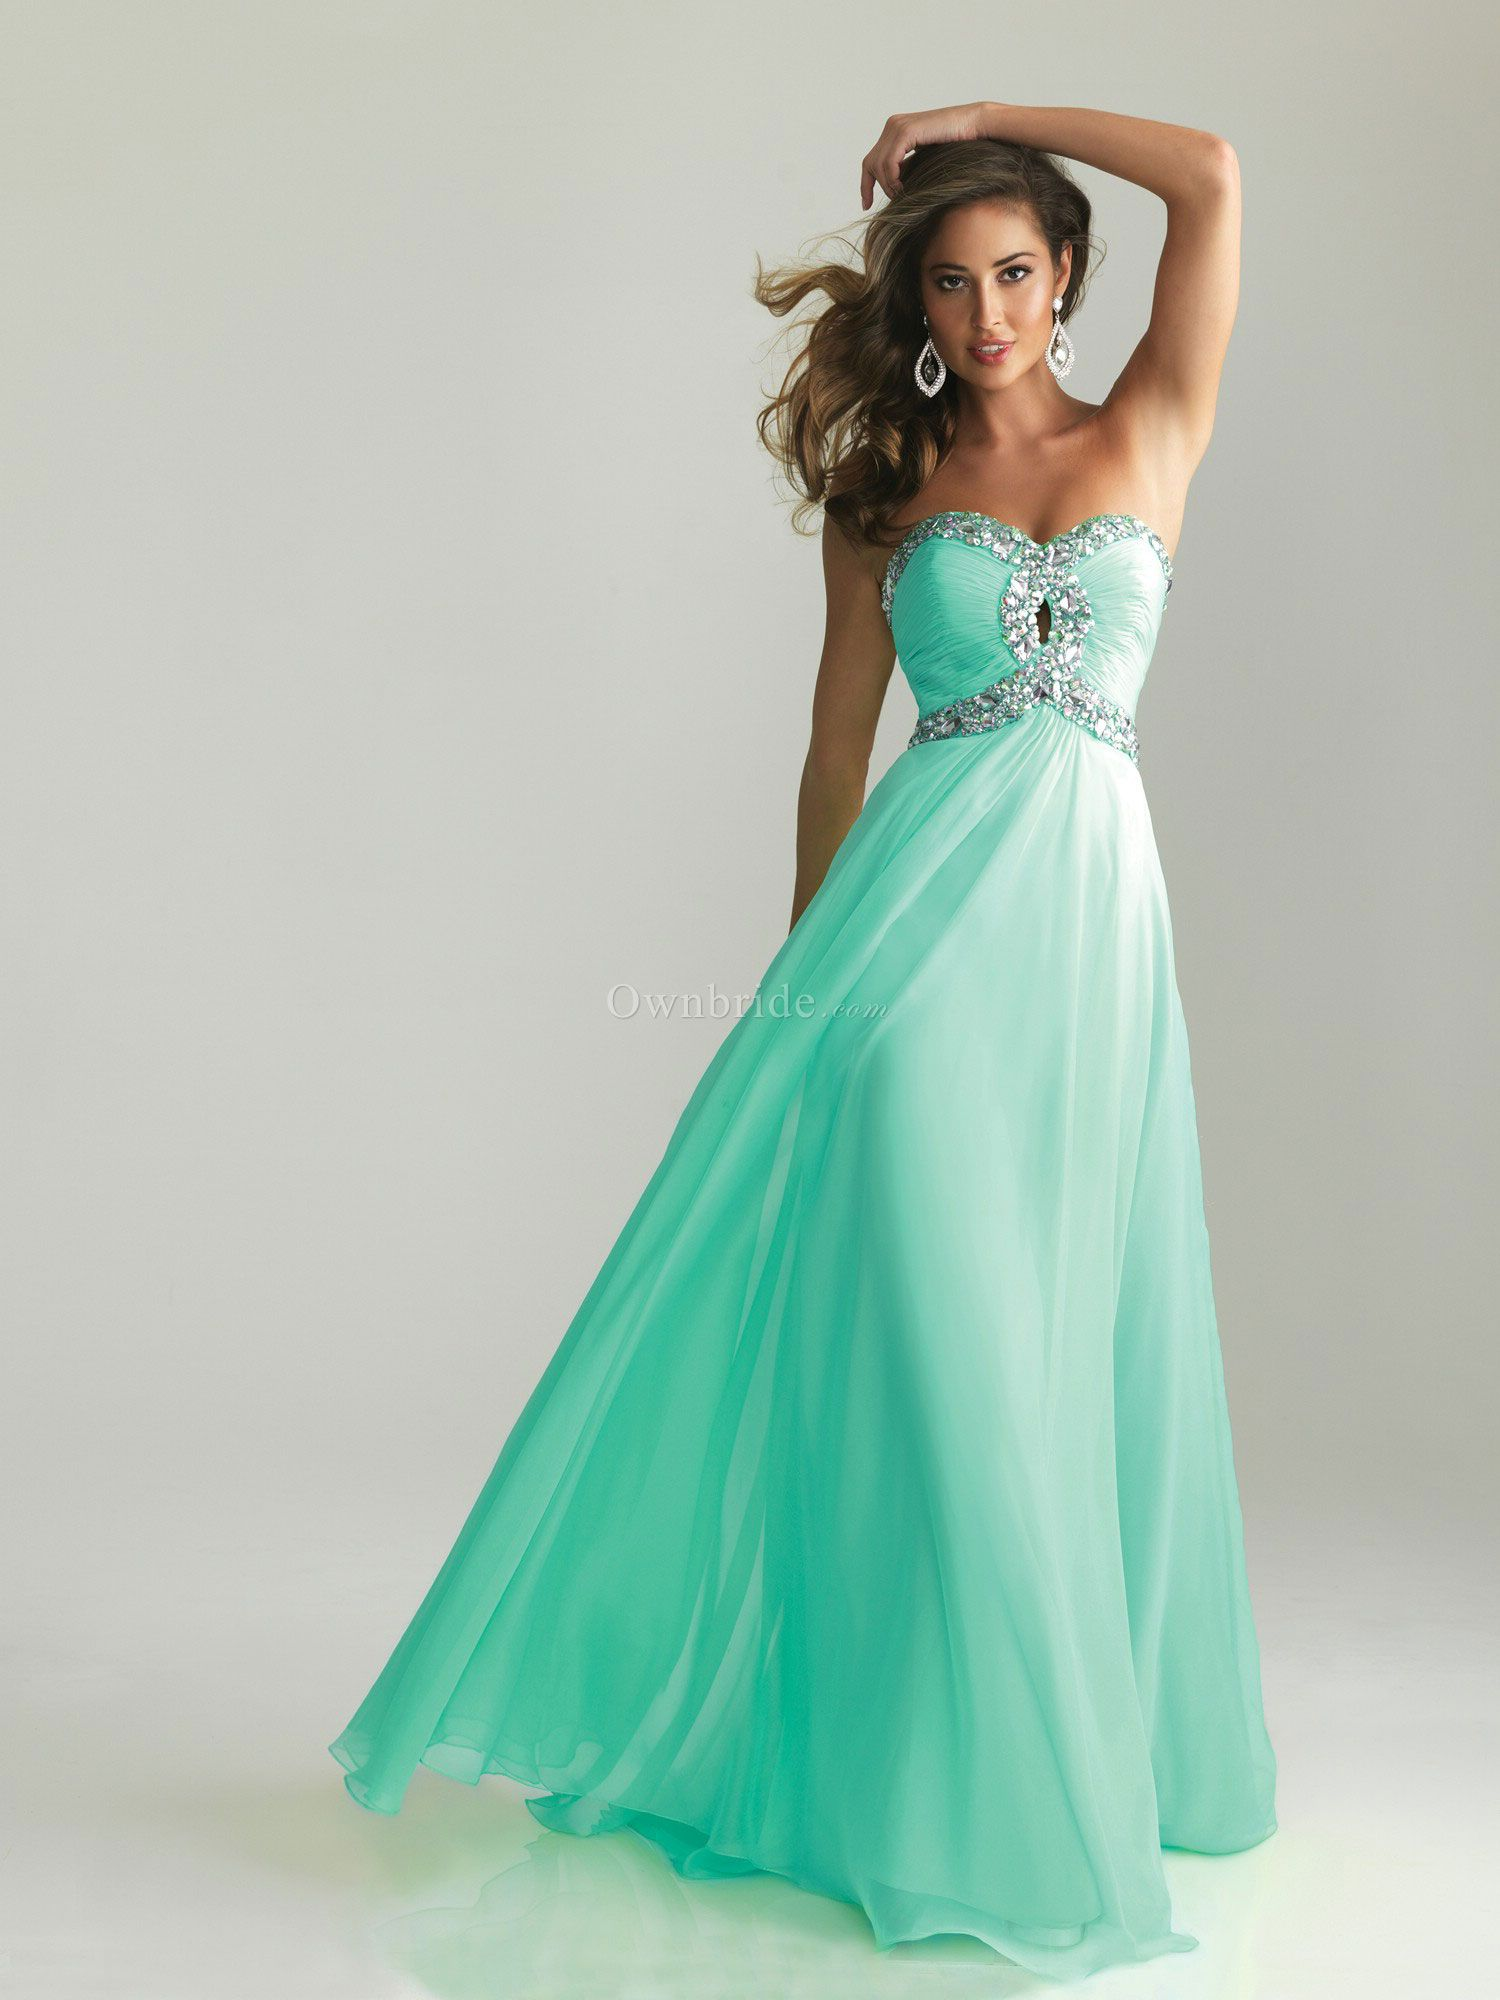 Prom dress   Play Mint for Youth   Pinterest   Prom, Country prom ...